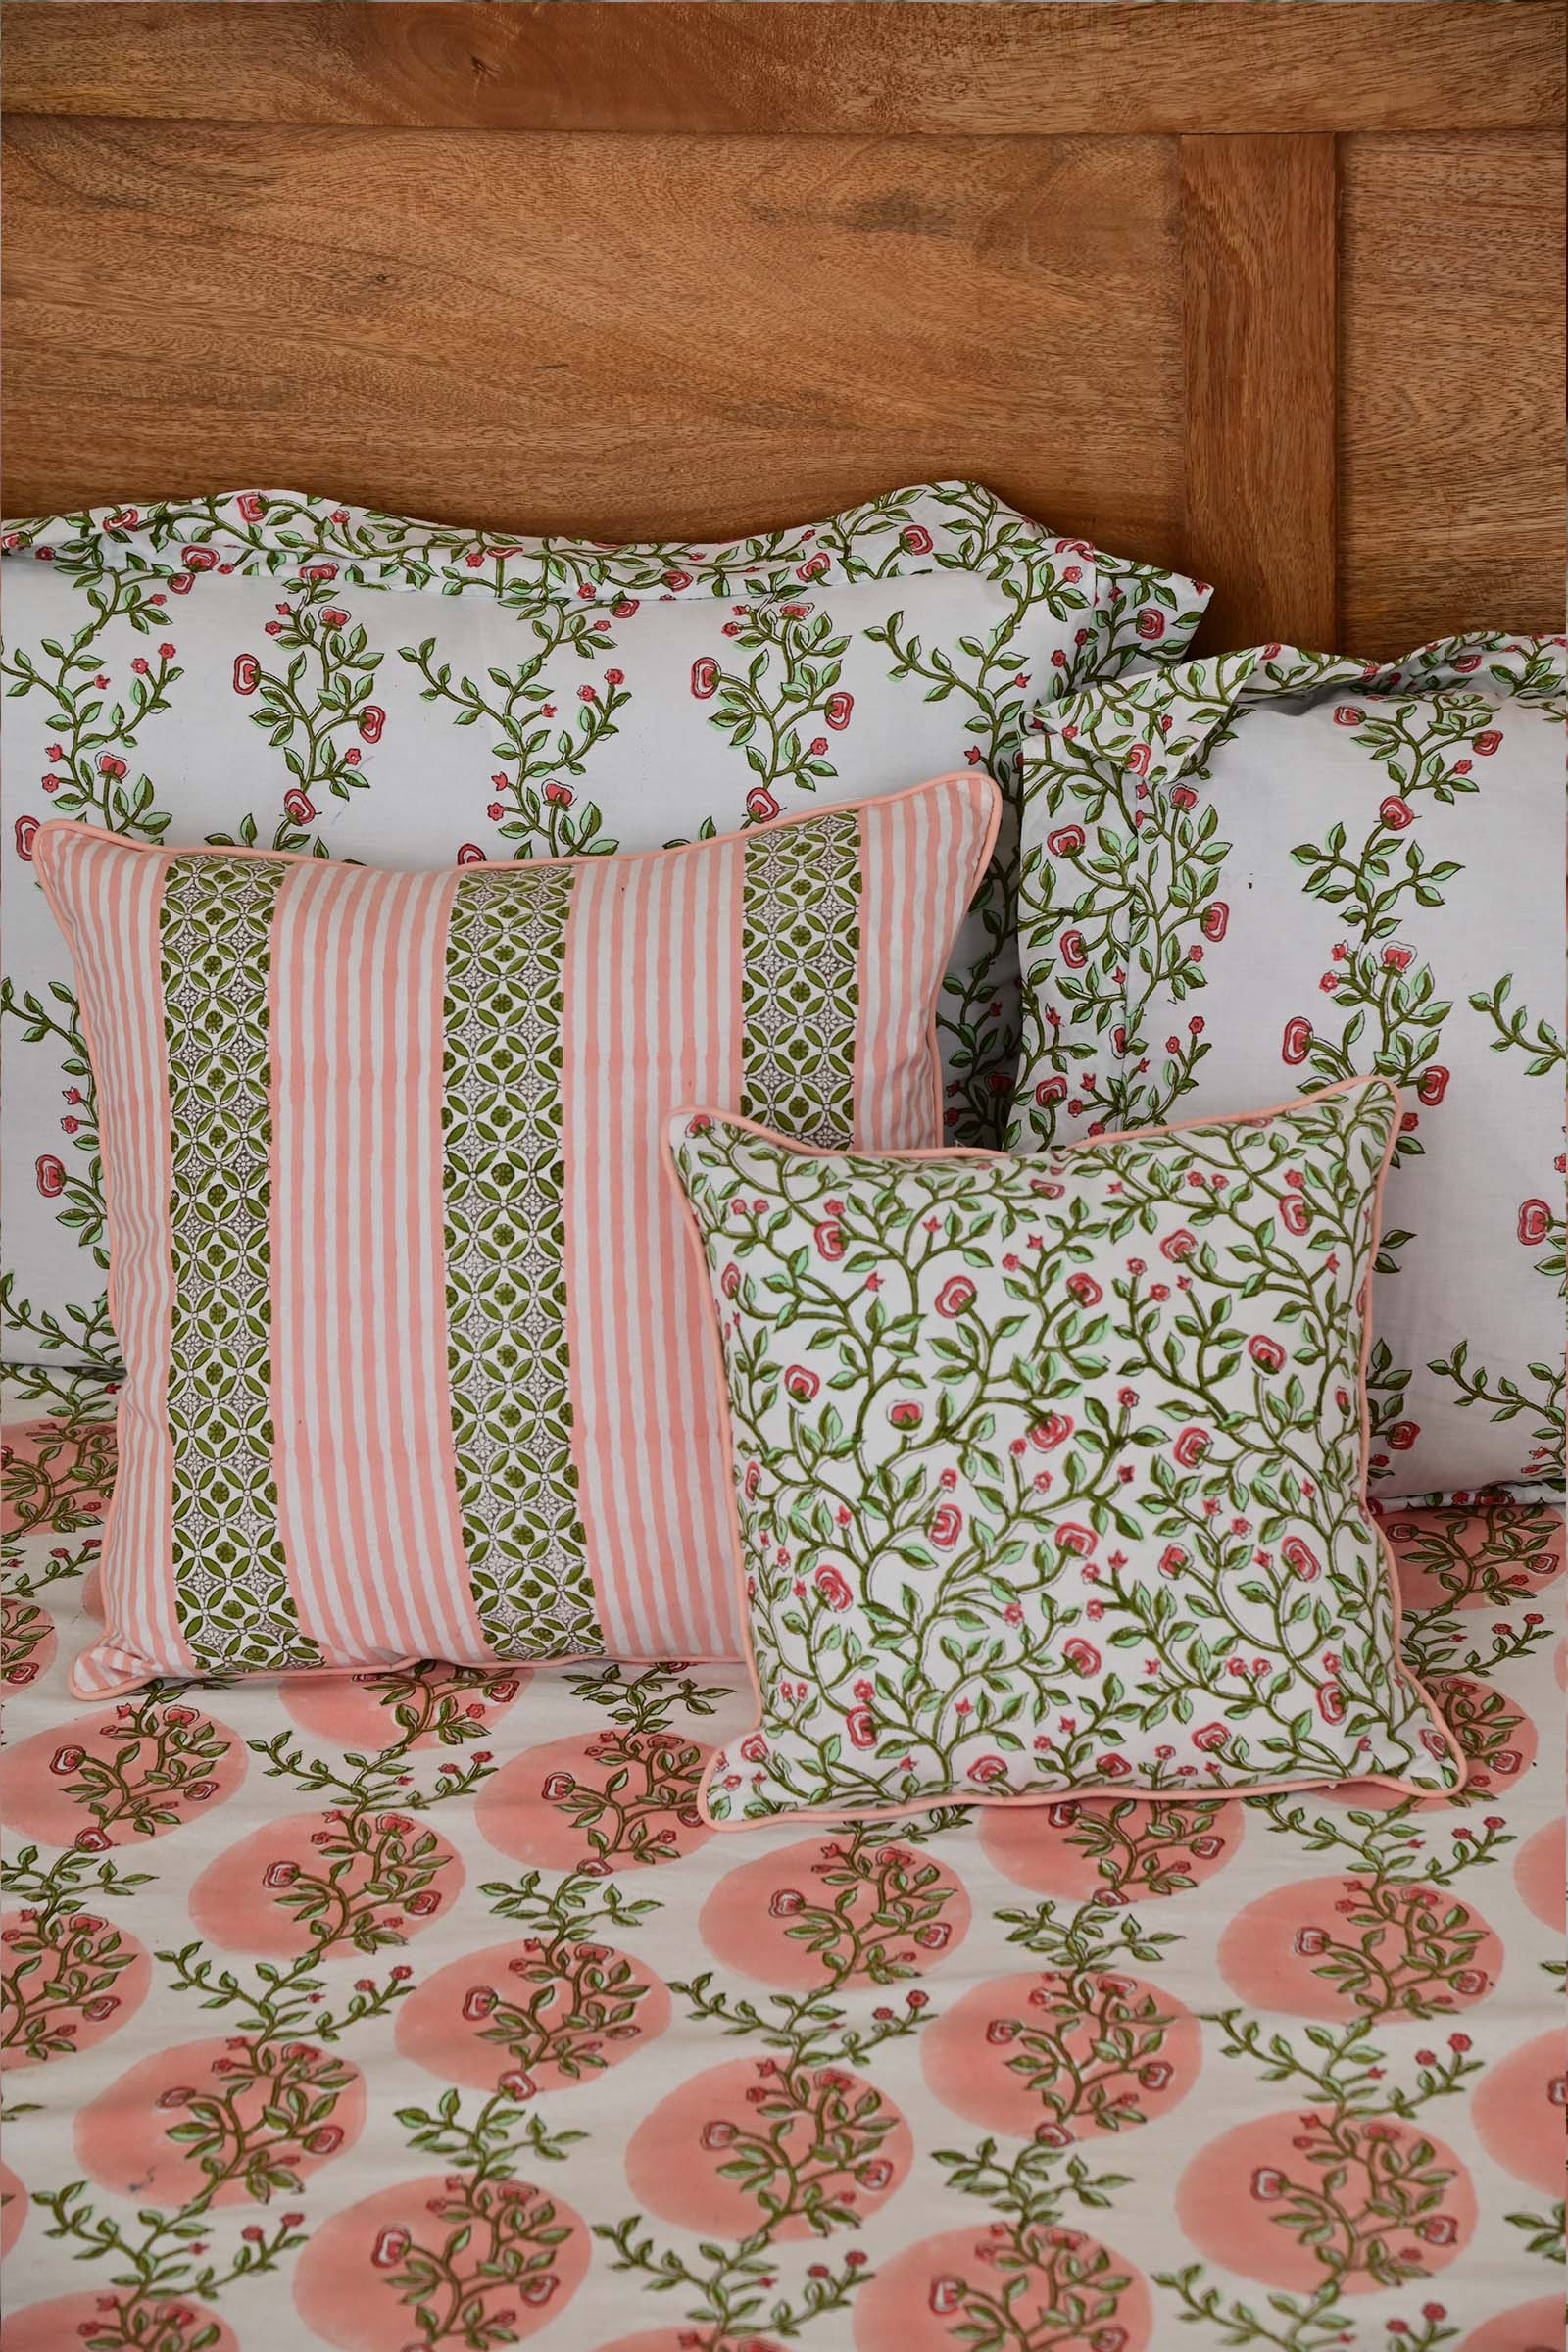 Blooming Trail 16*16 Cushion Cover